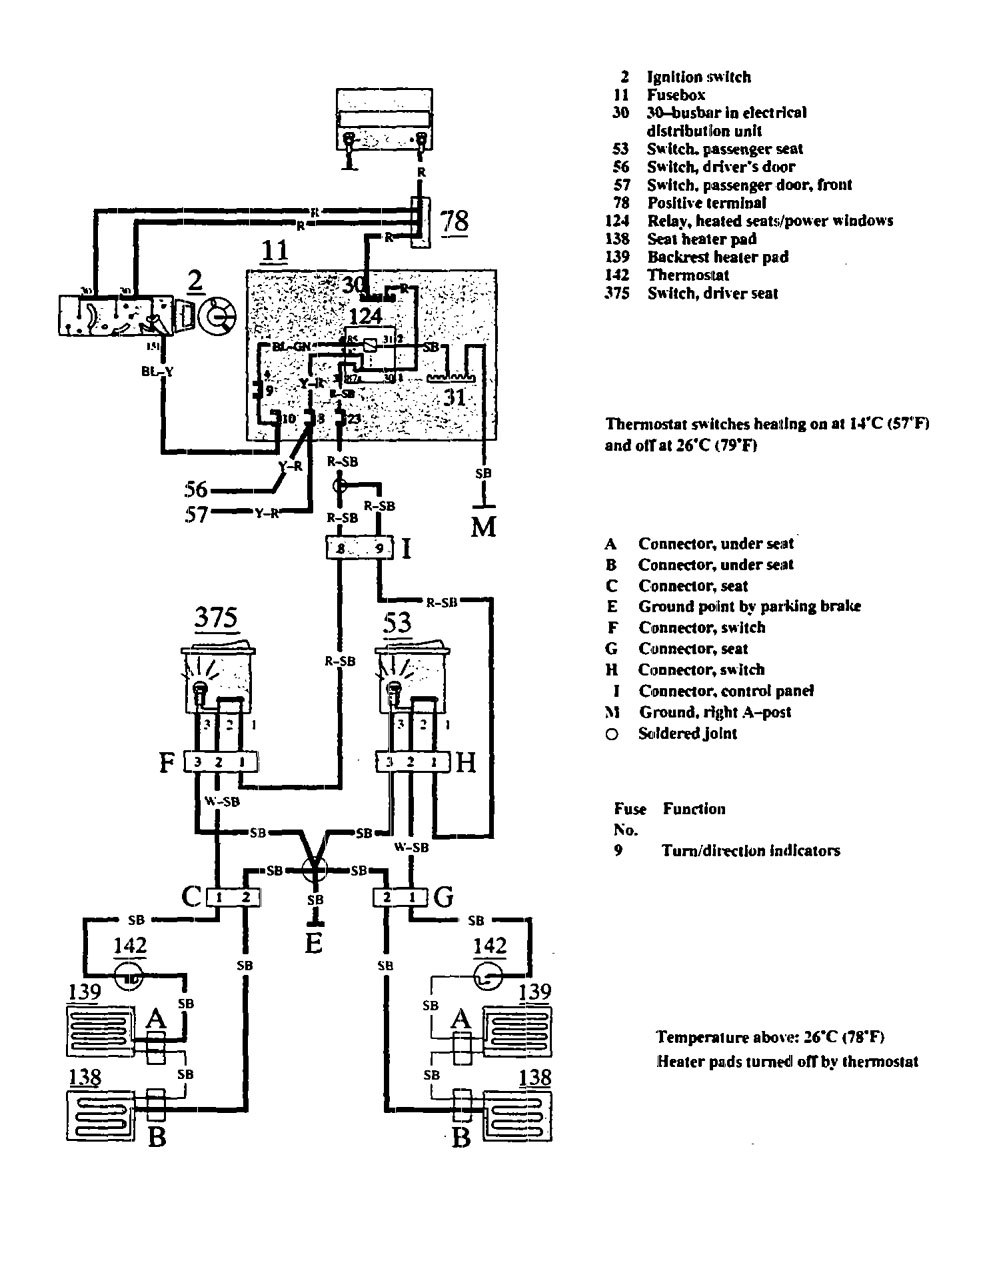 Wiring Diagram For 1994 Volvo 940 : Volvo  wiring diagrams heated seats